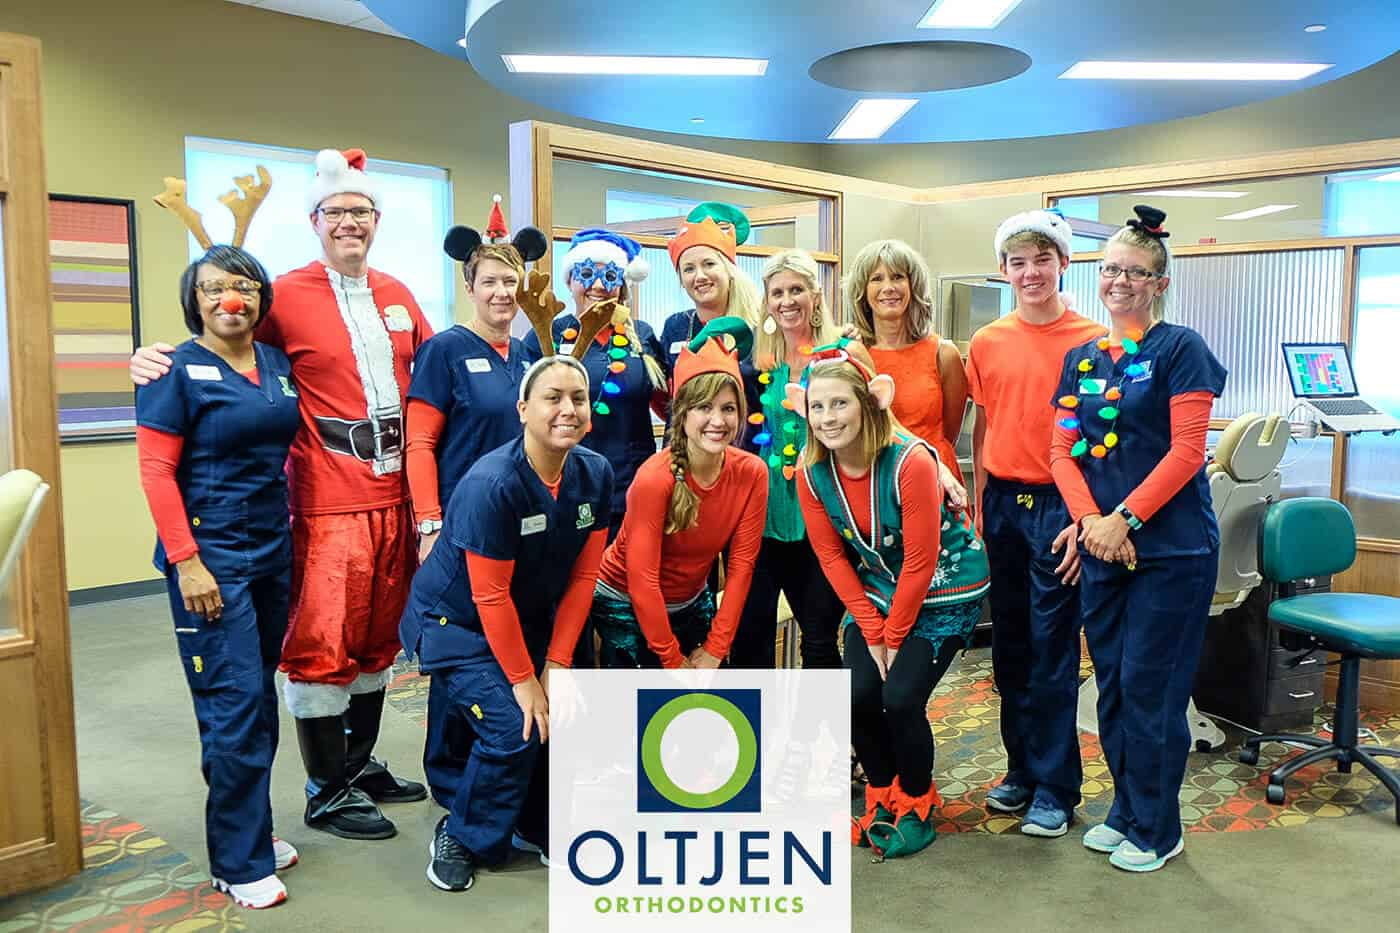 Oltjen-Orthodontics-Christmas-in-July-7-of-10